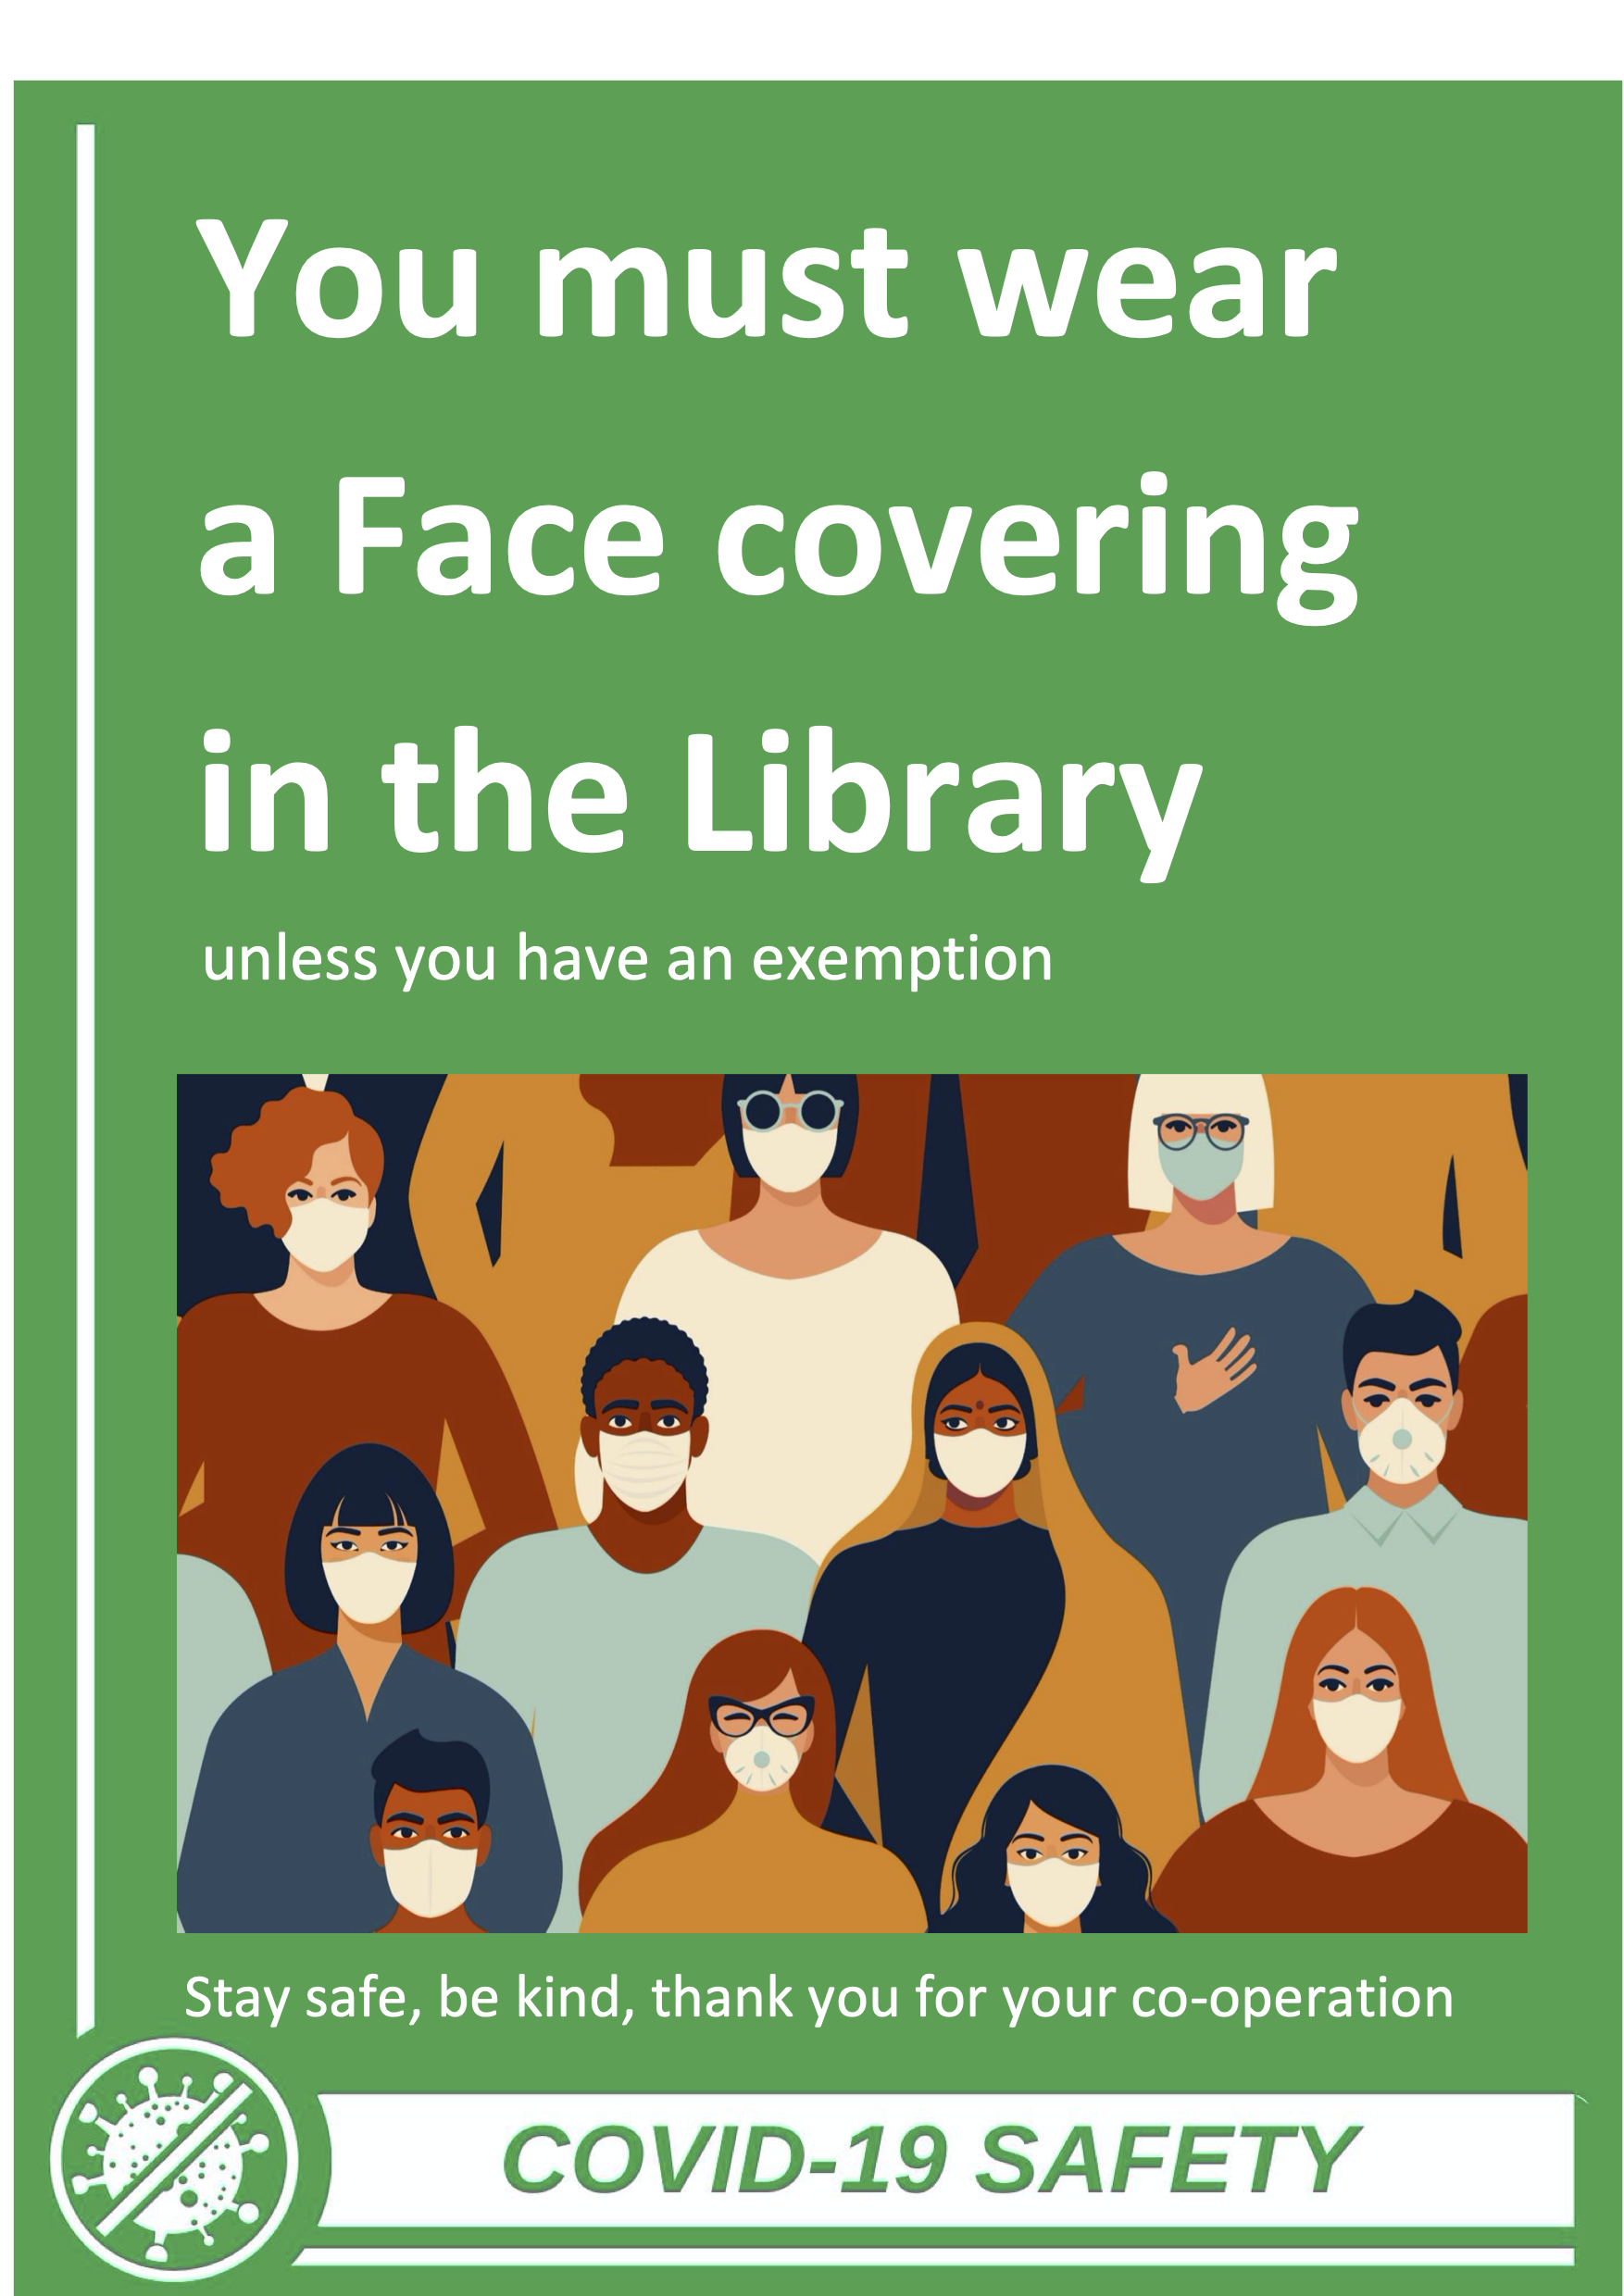 You must wear a face covering in the library unless you have an exemption. Stay safe, be kind, thank you.